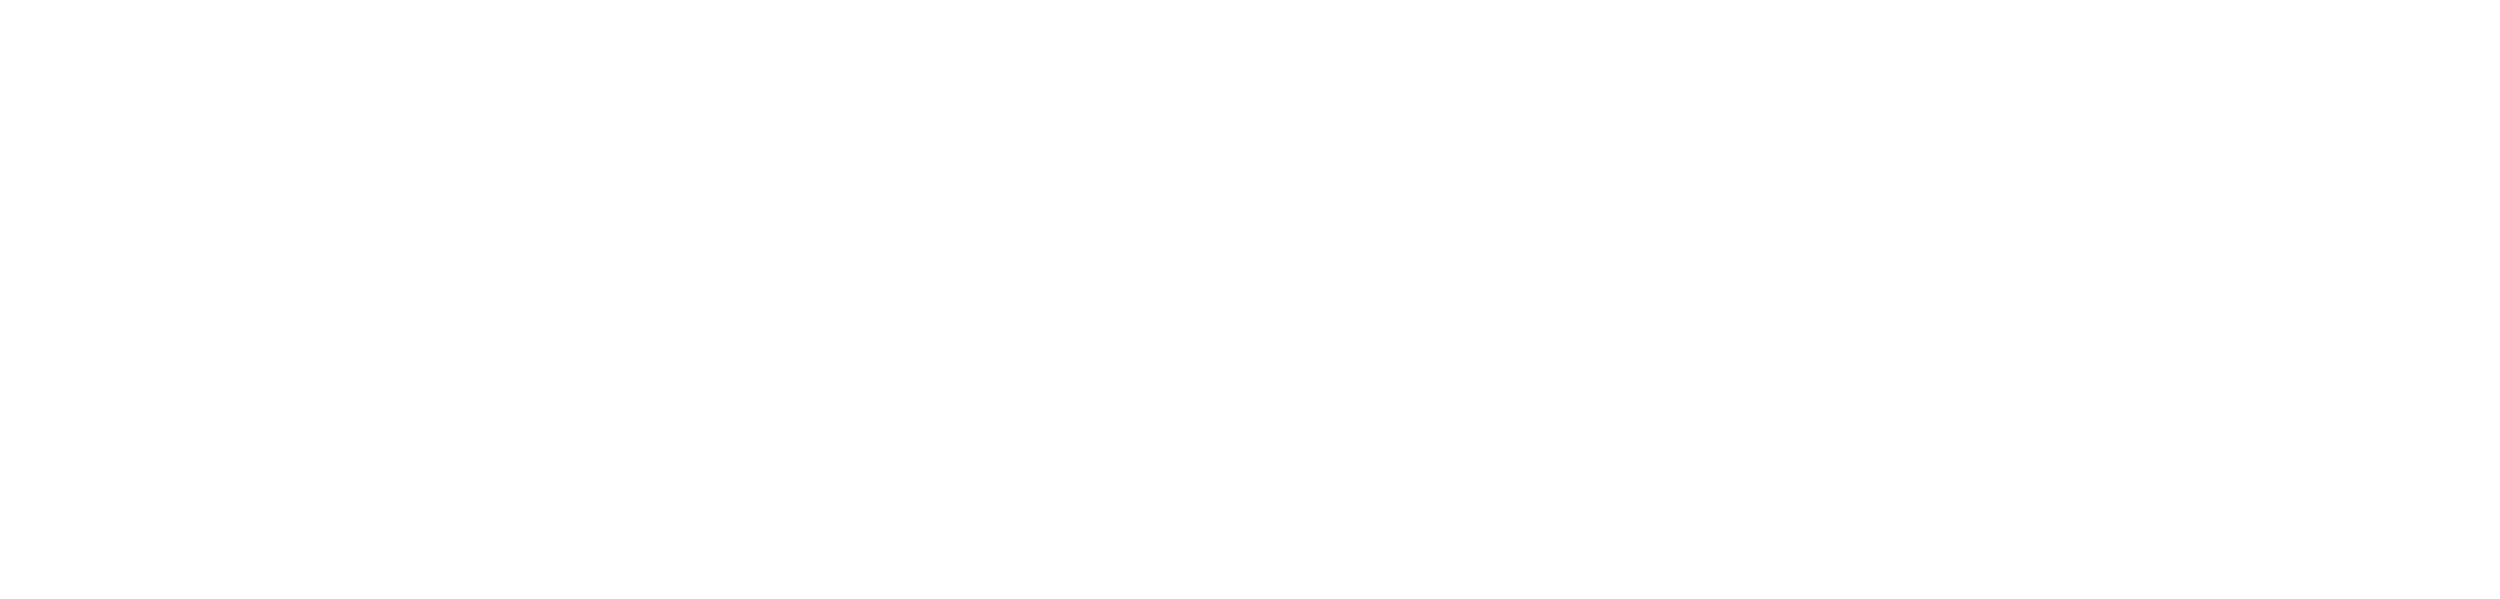 Monthlyenneagramgathering-02.png